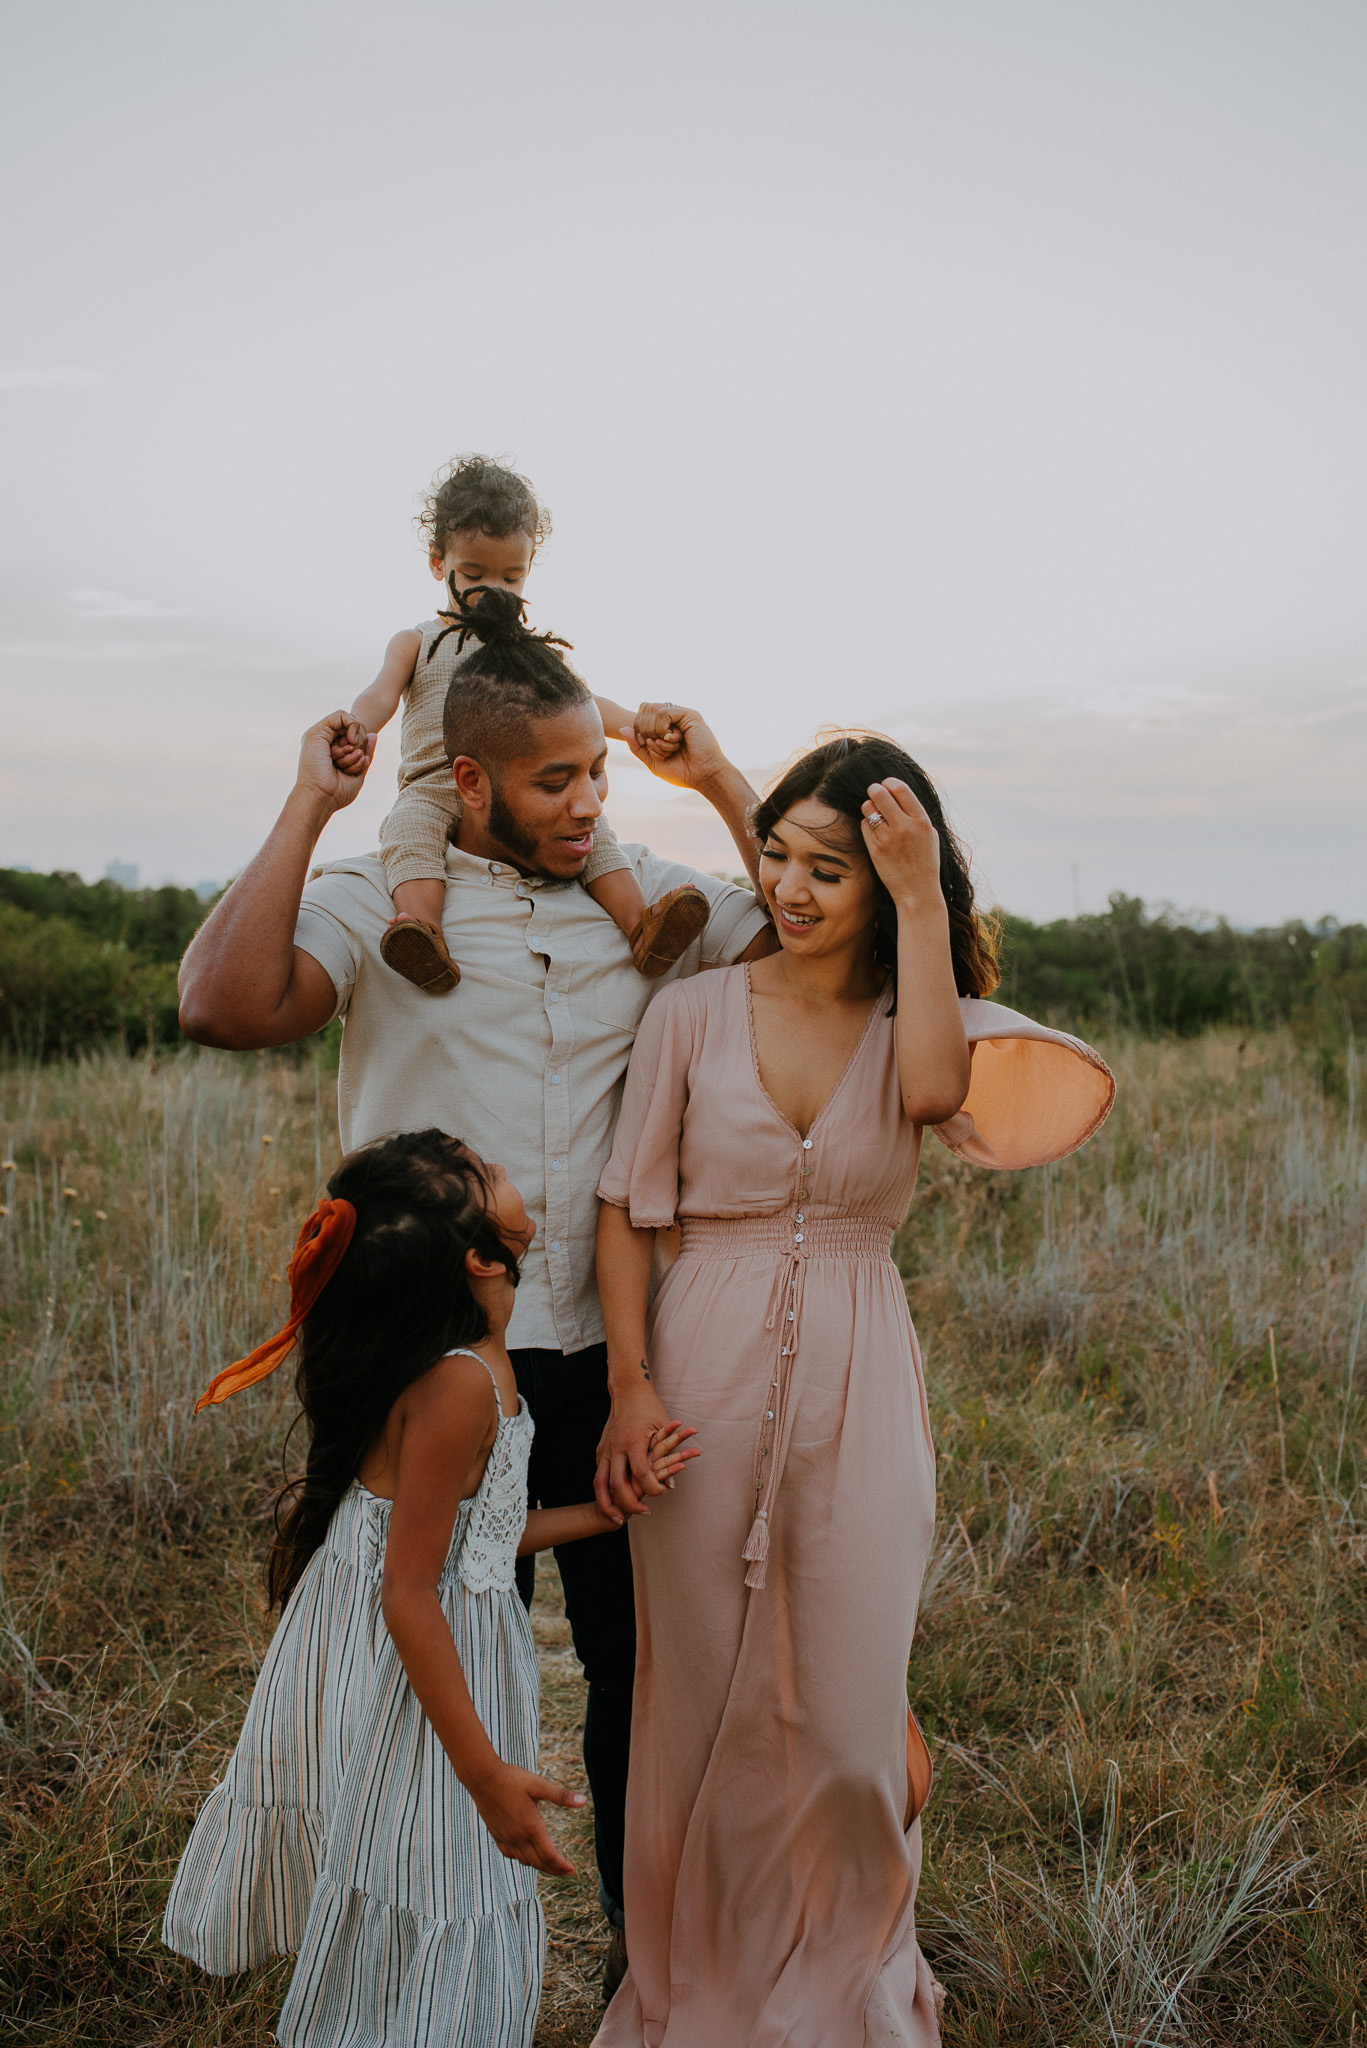 Jessi-marie-photography-dallas-fort-worth-texas-family-photographer-tandy-hills-natural-area-32